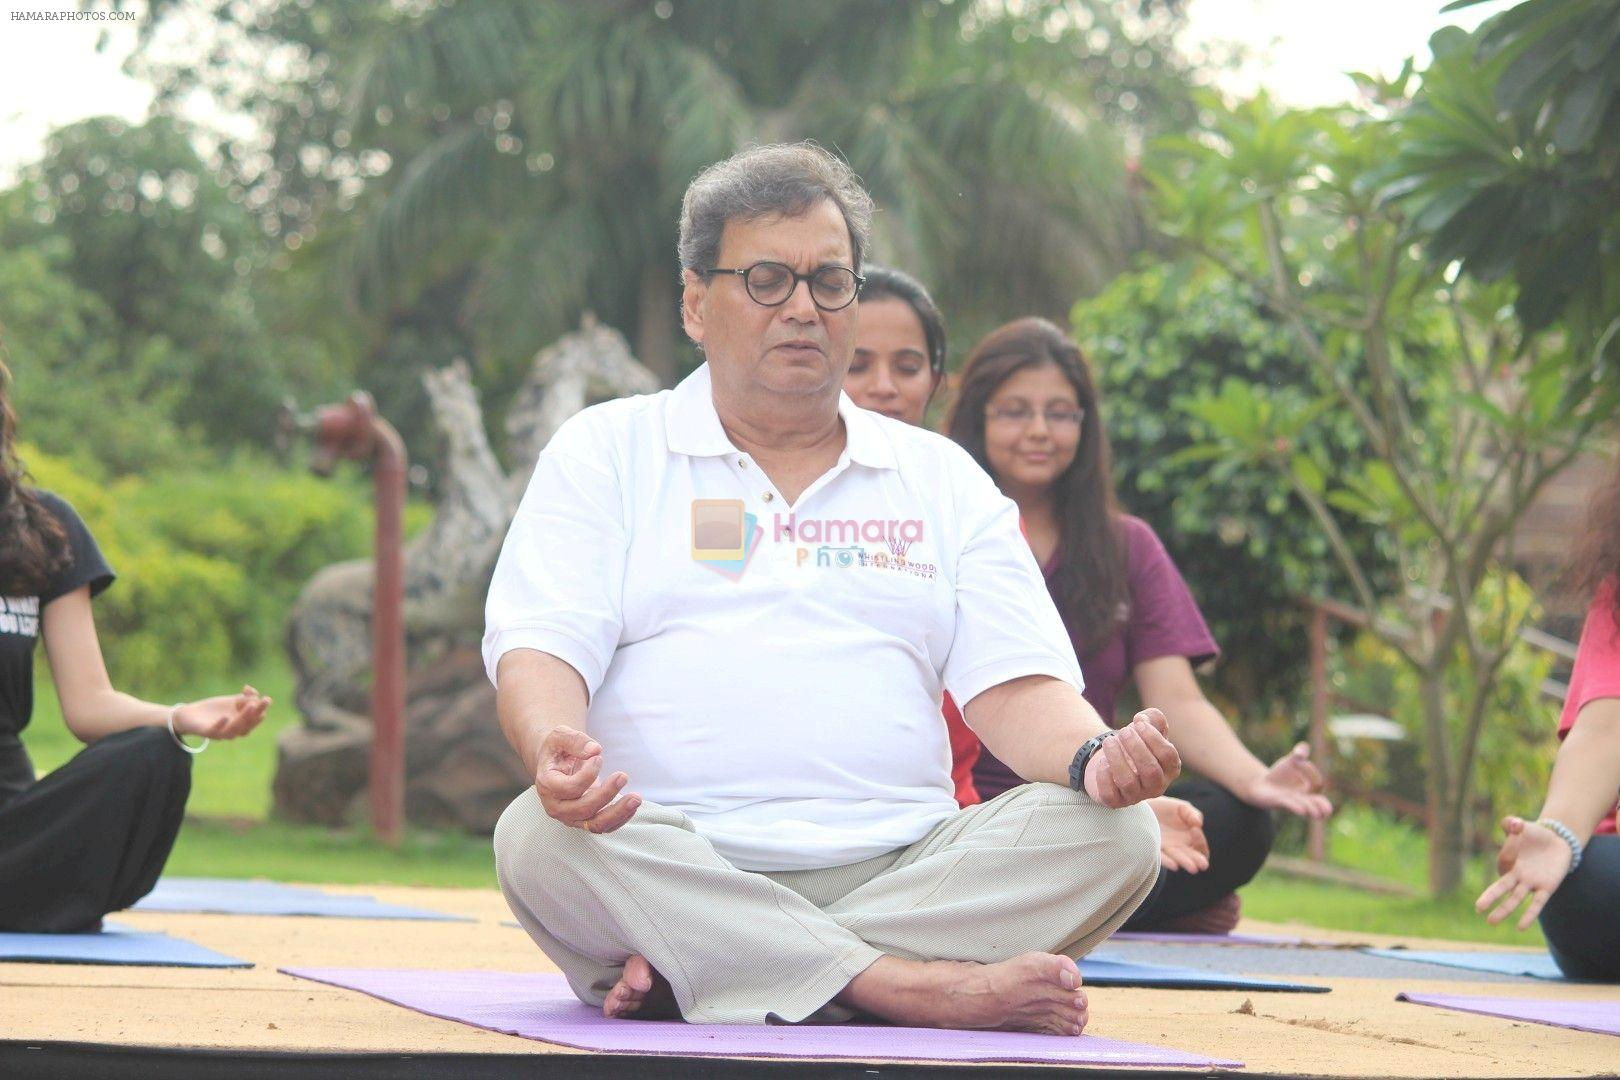 Subhash Ghai doing yoga practice along with his daughter and grandchildren at Whistling Woods International on 15th June 2017